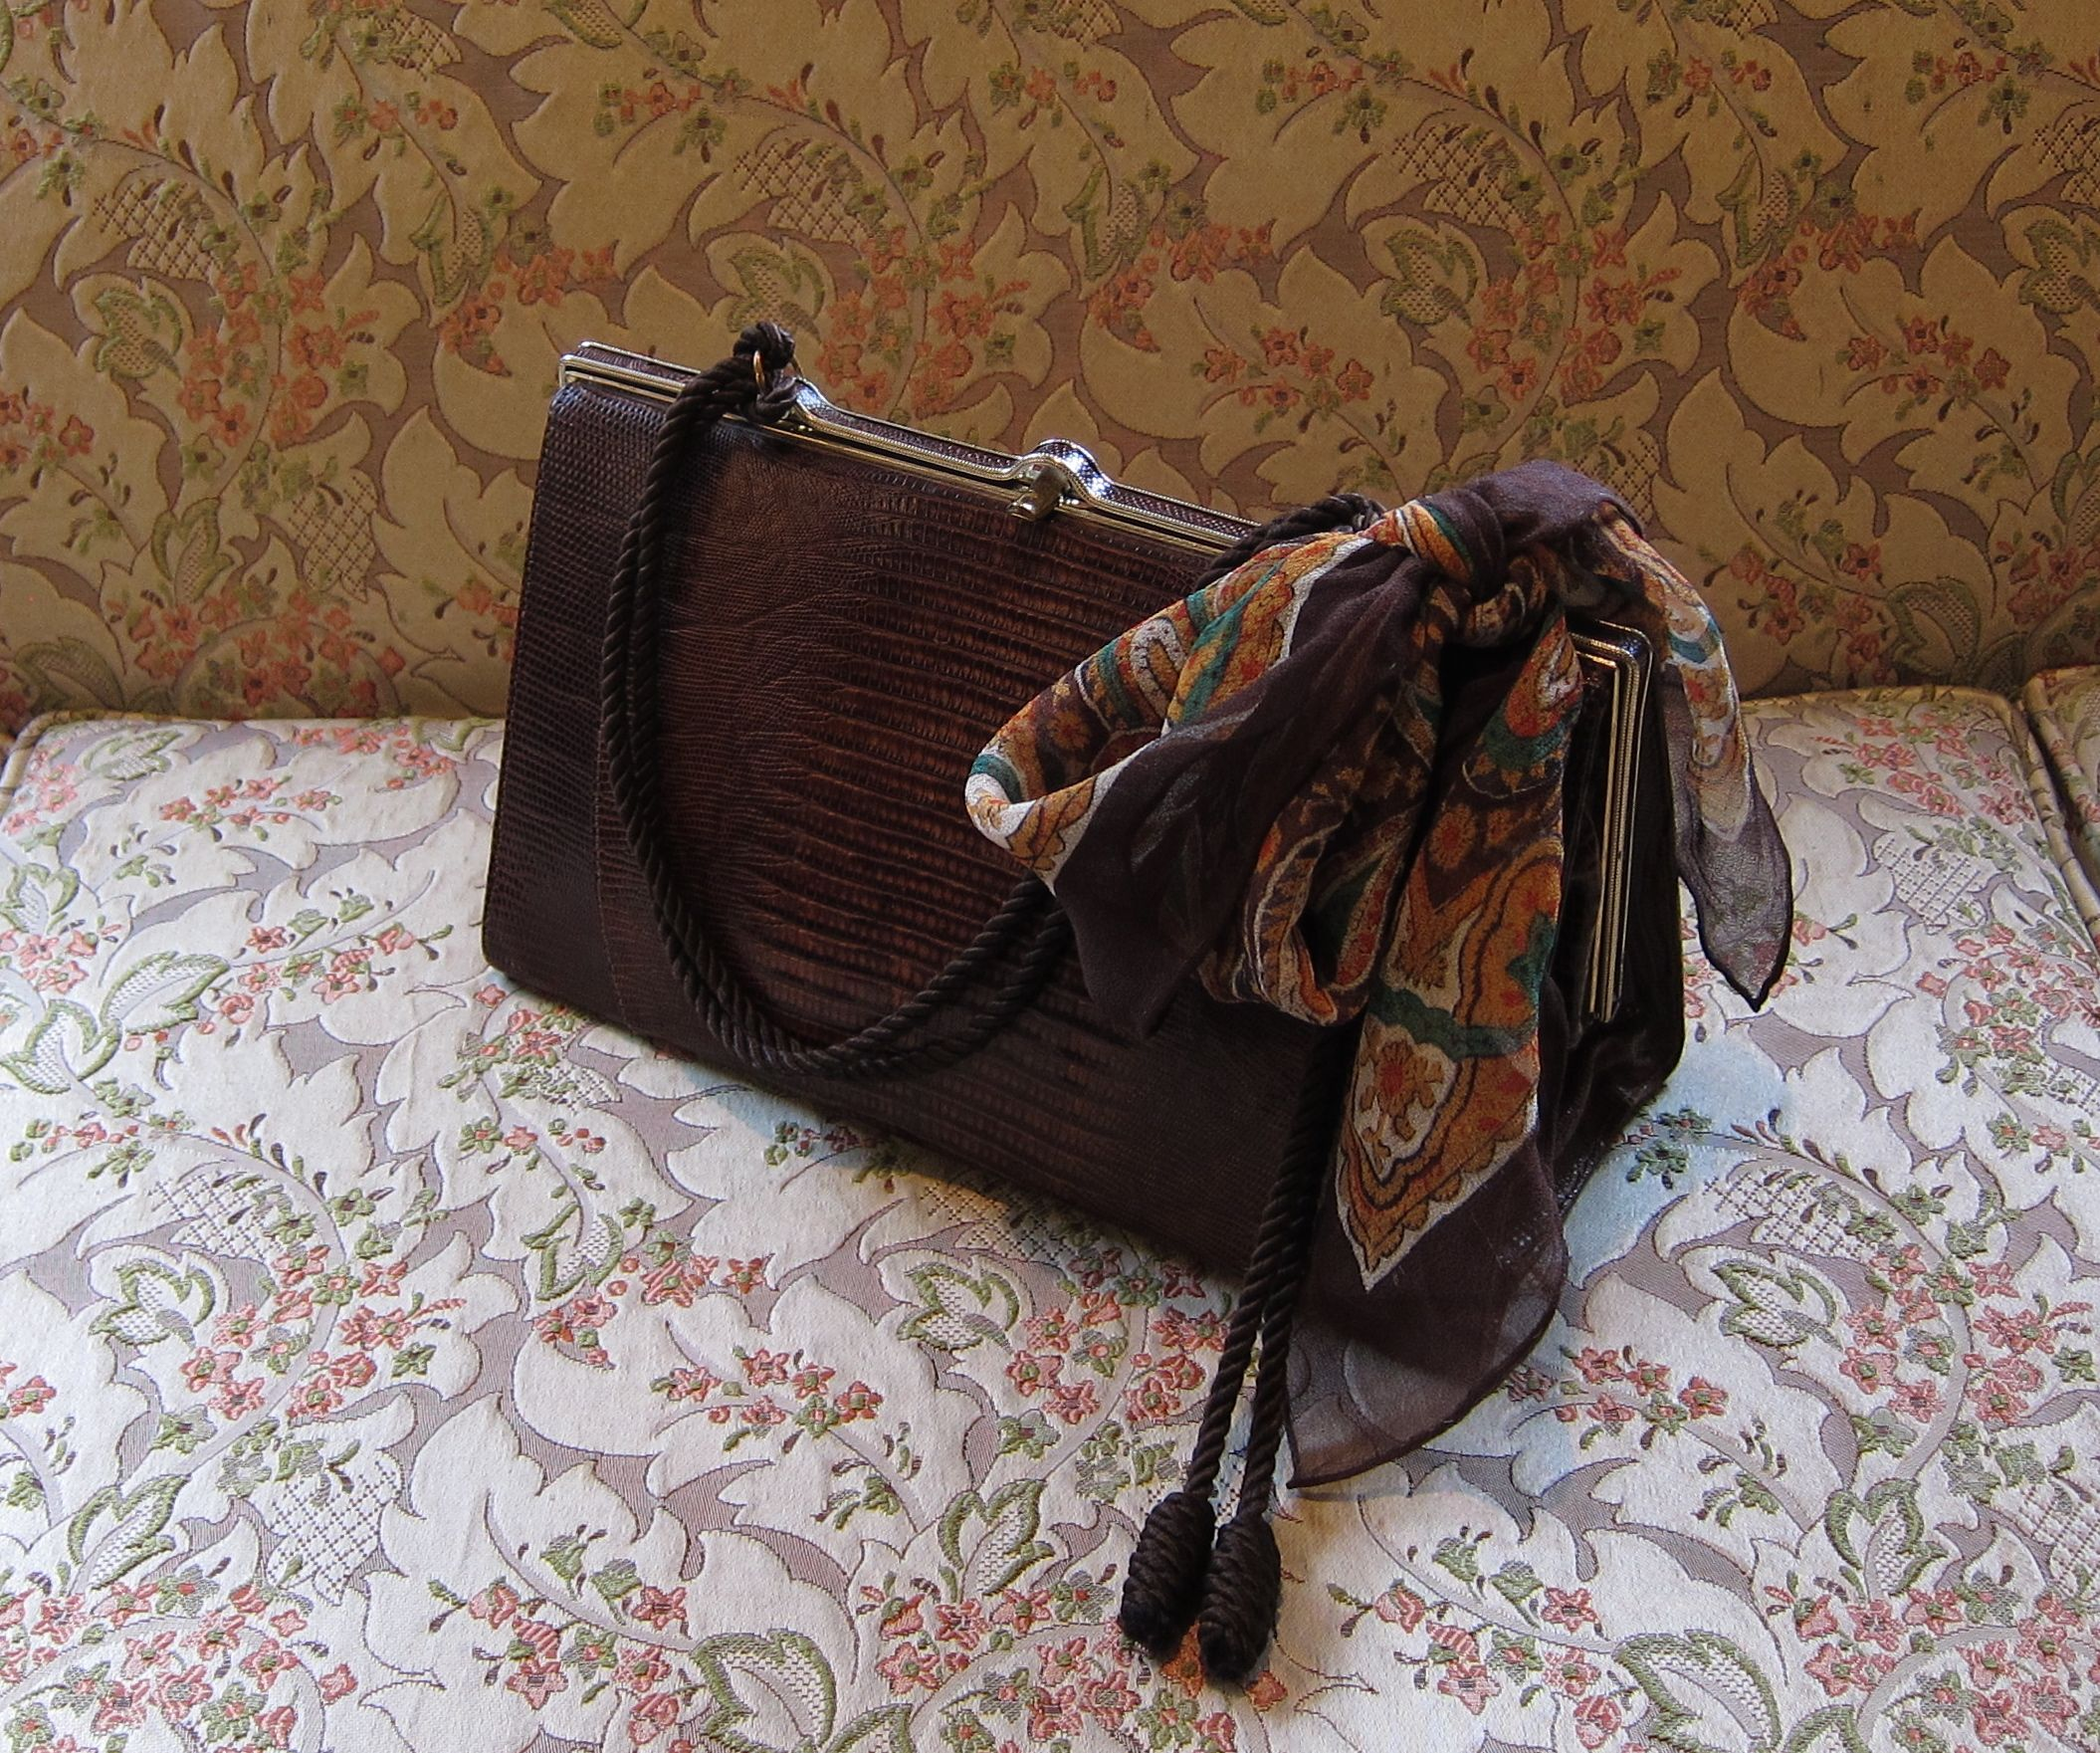 A creatively up to date handle added to an artistically vintage bags    Vintage 50's Snake Skin Bag With New Handle Made of a Silk Cord Belt ...